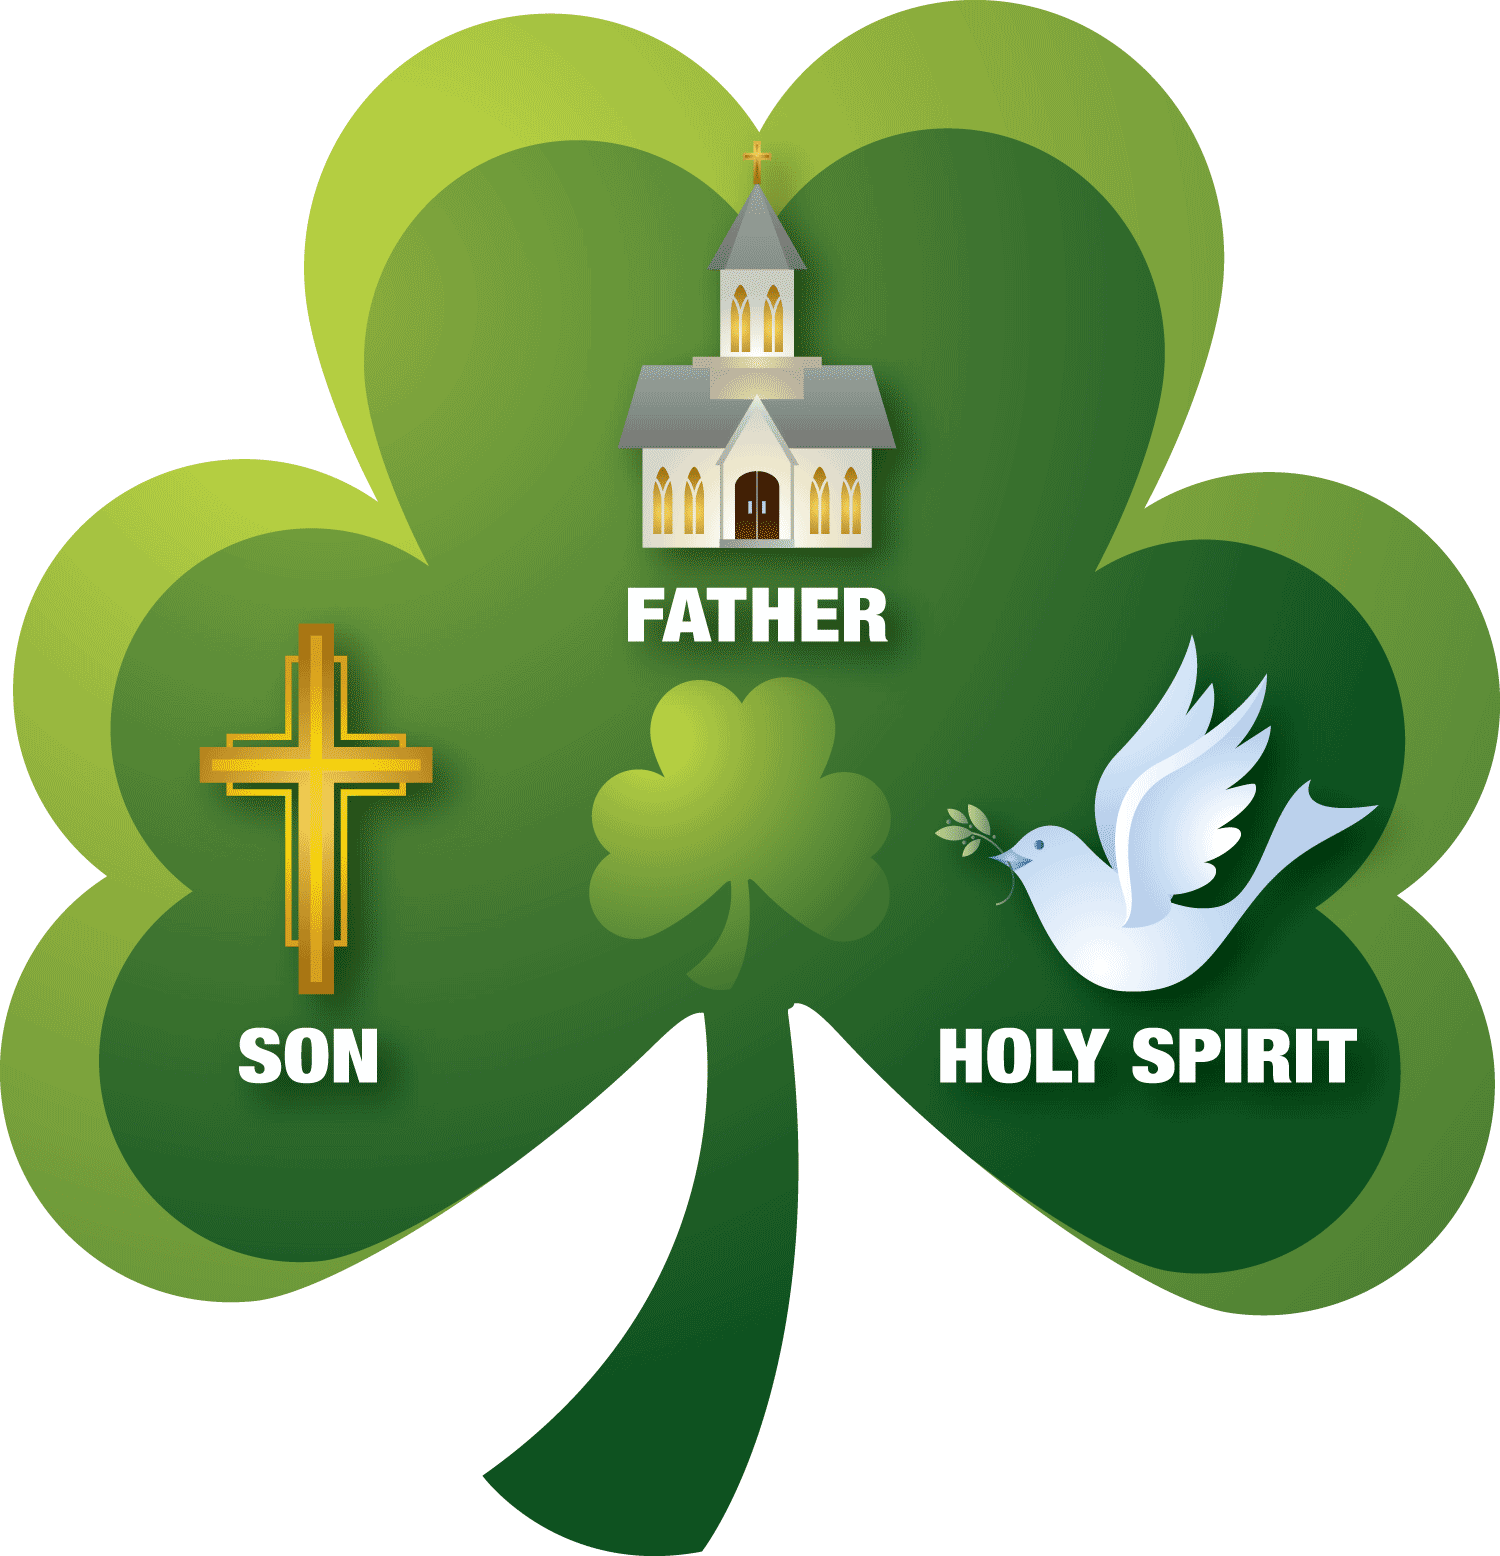 The Meaning Behind The Shamrock Courageous Christian Father